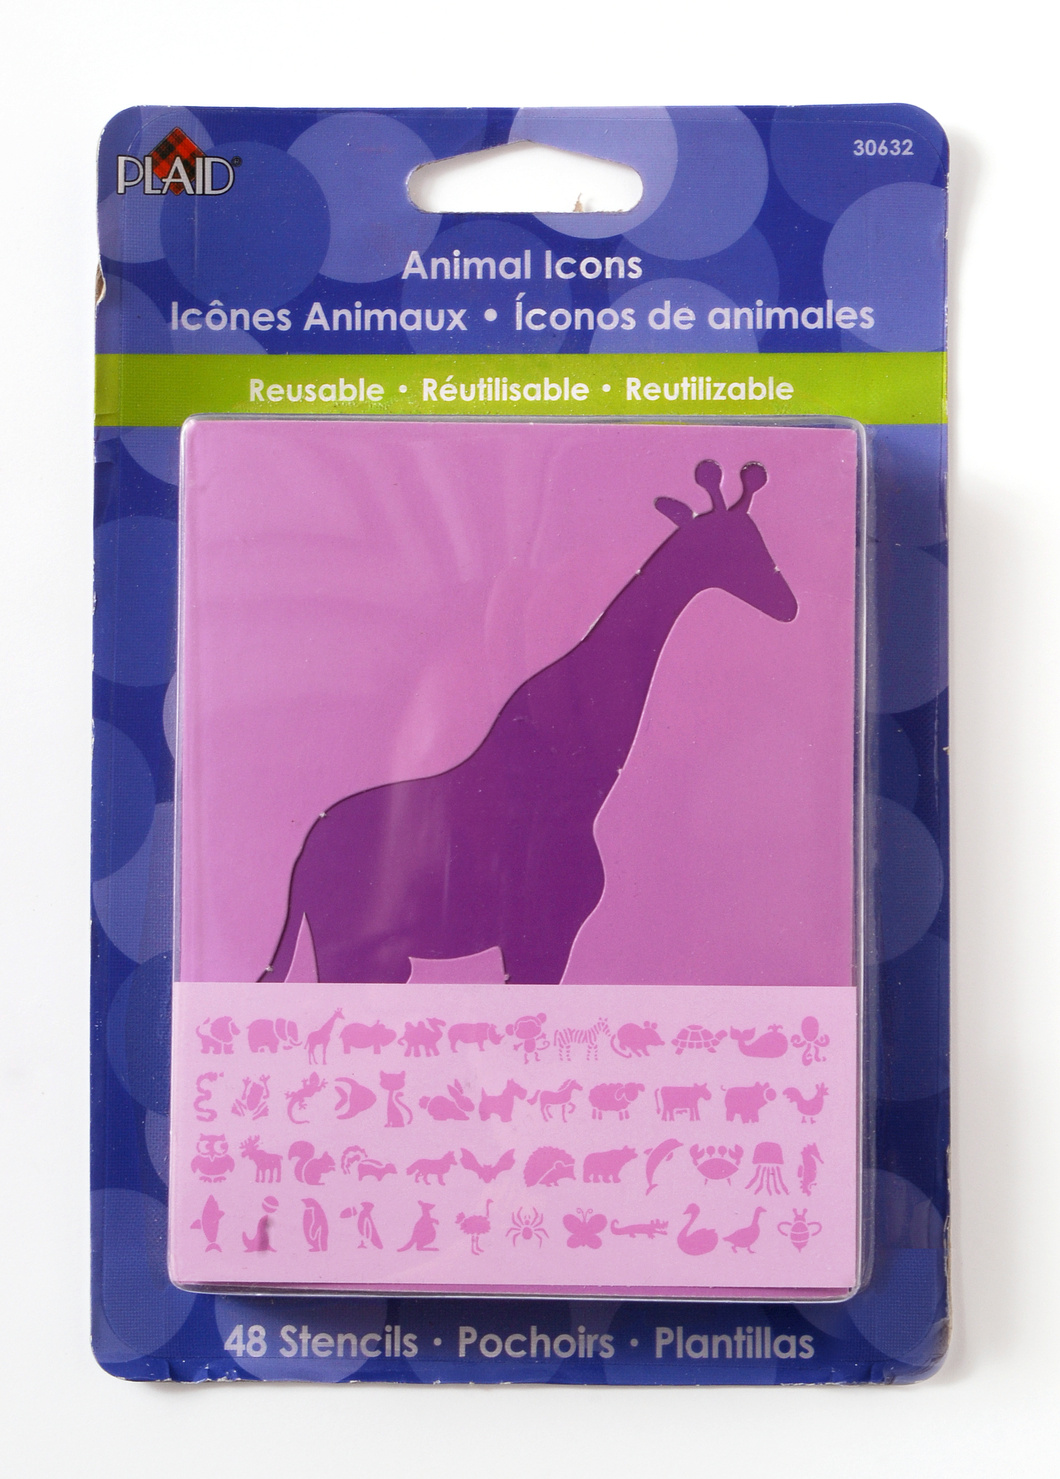 Plaid ® Stencils - Value Packs - Letter Stencils - 3\u0022 Animals Icons